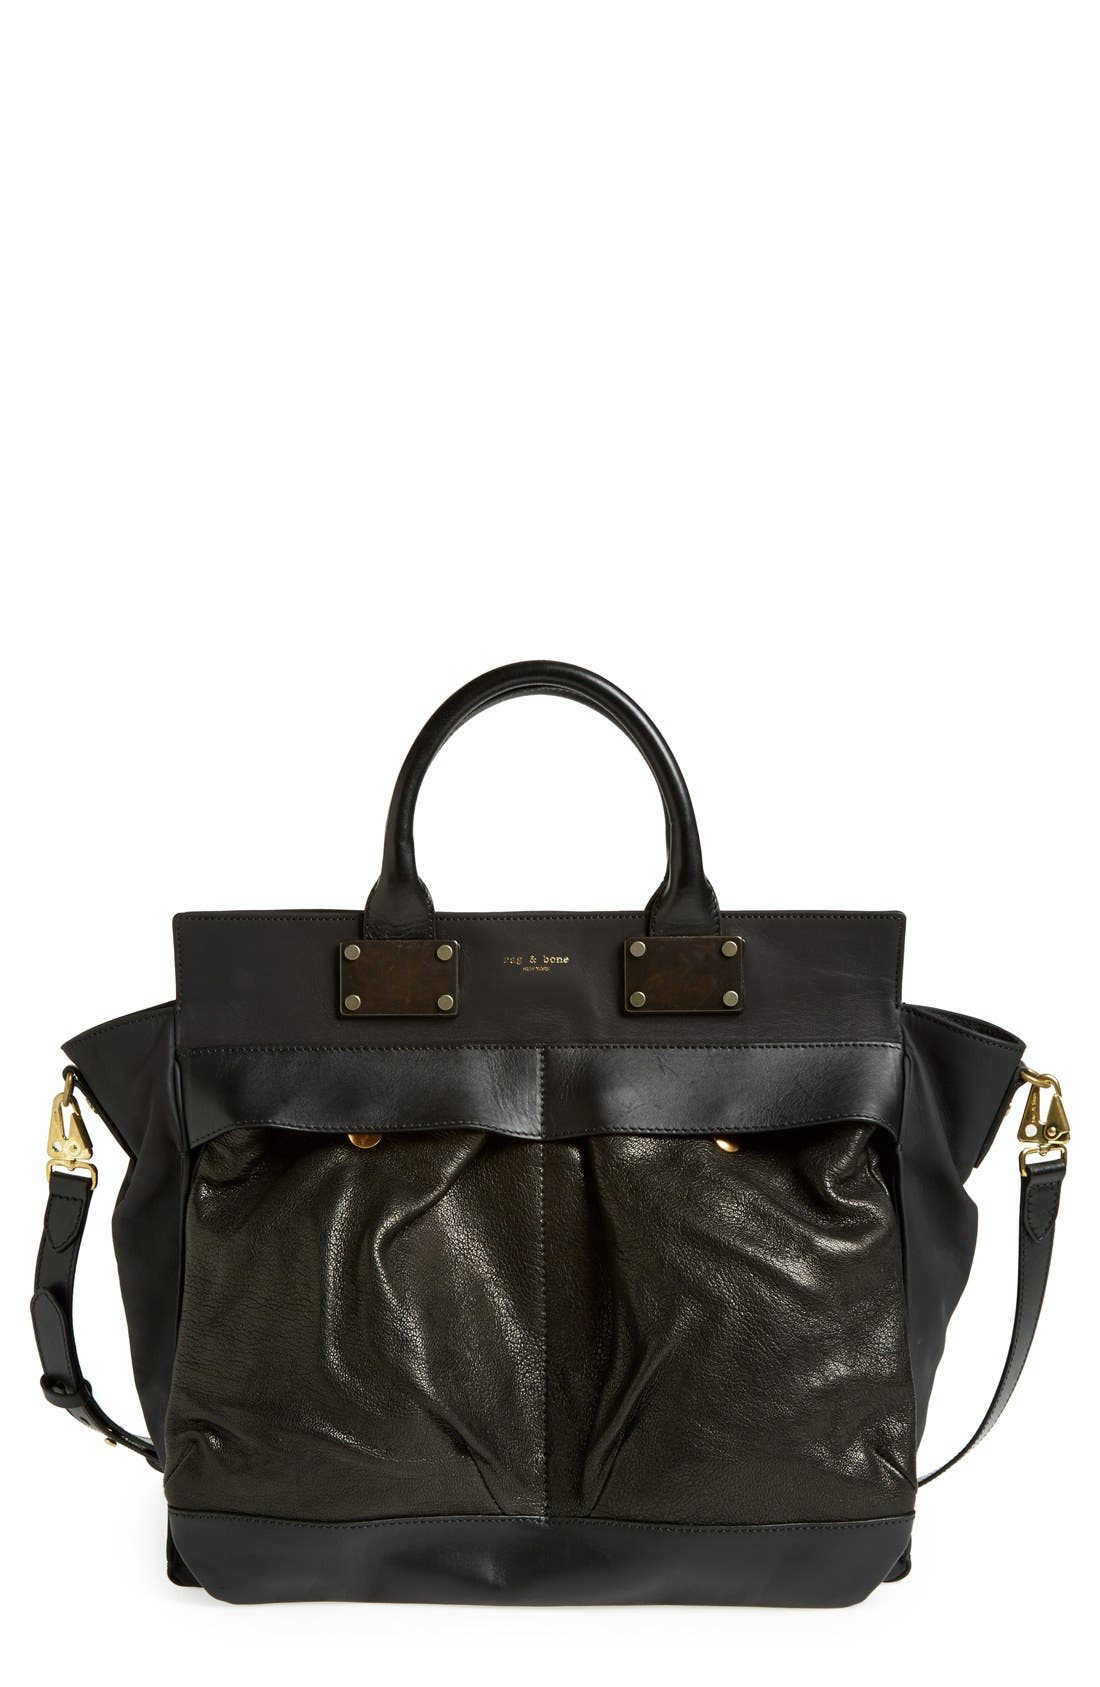 Main Image - rag & bone 'Large Pilot' Satchel